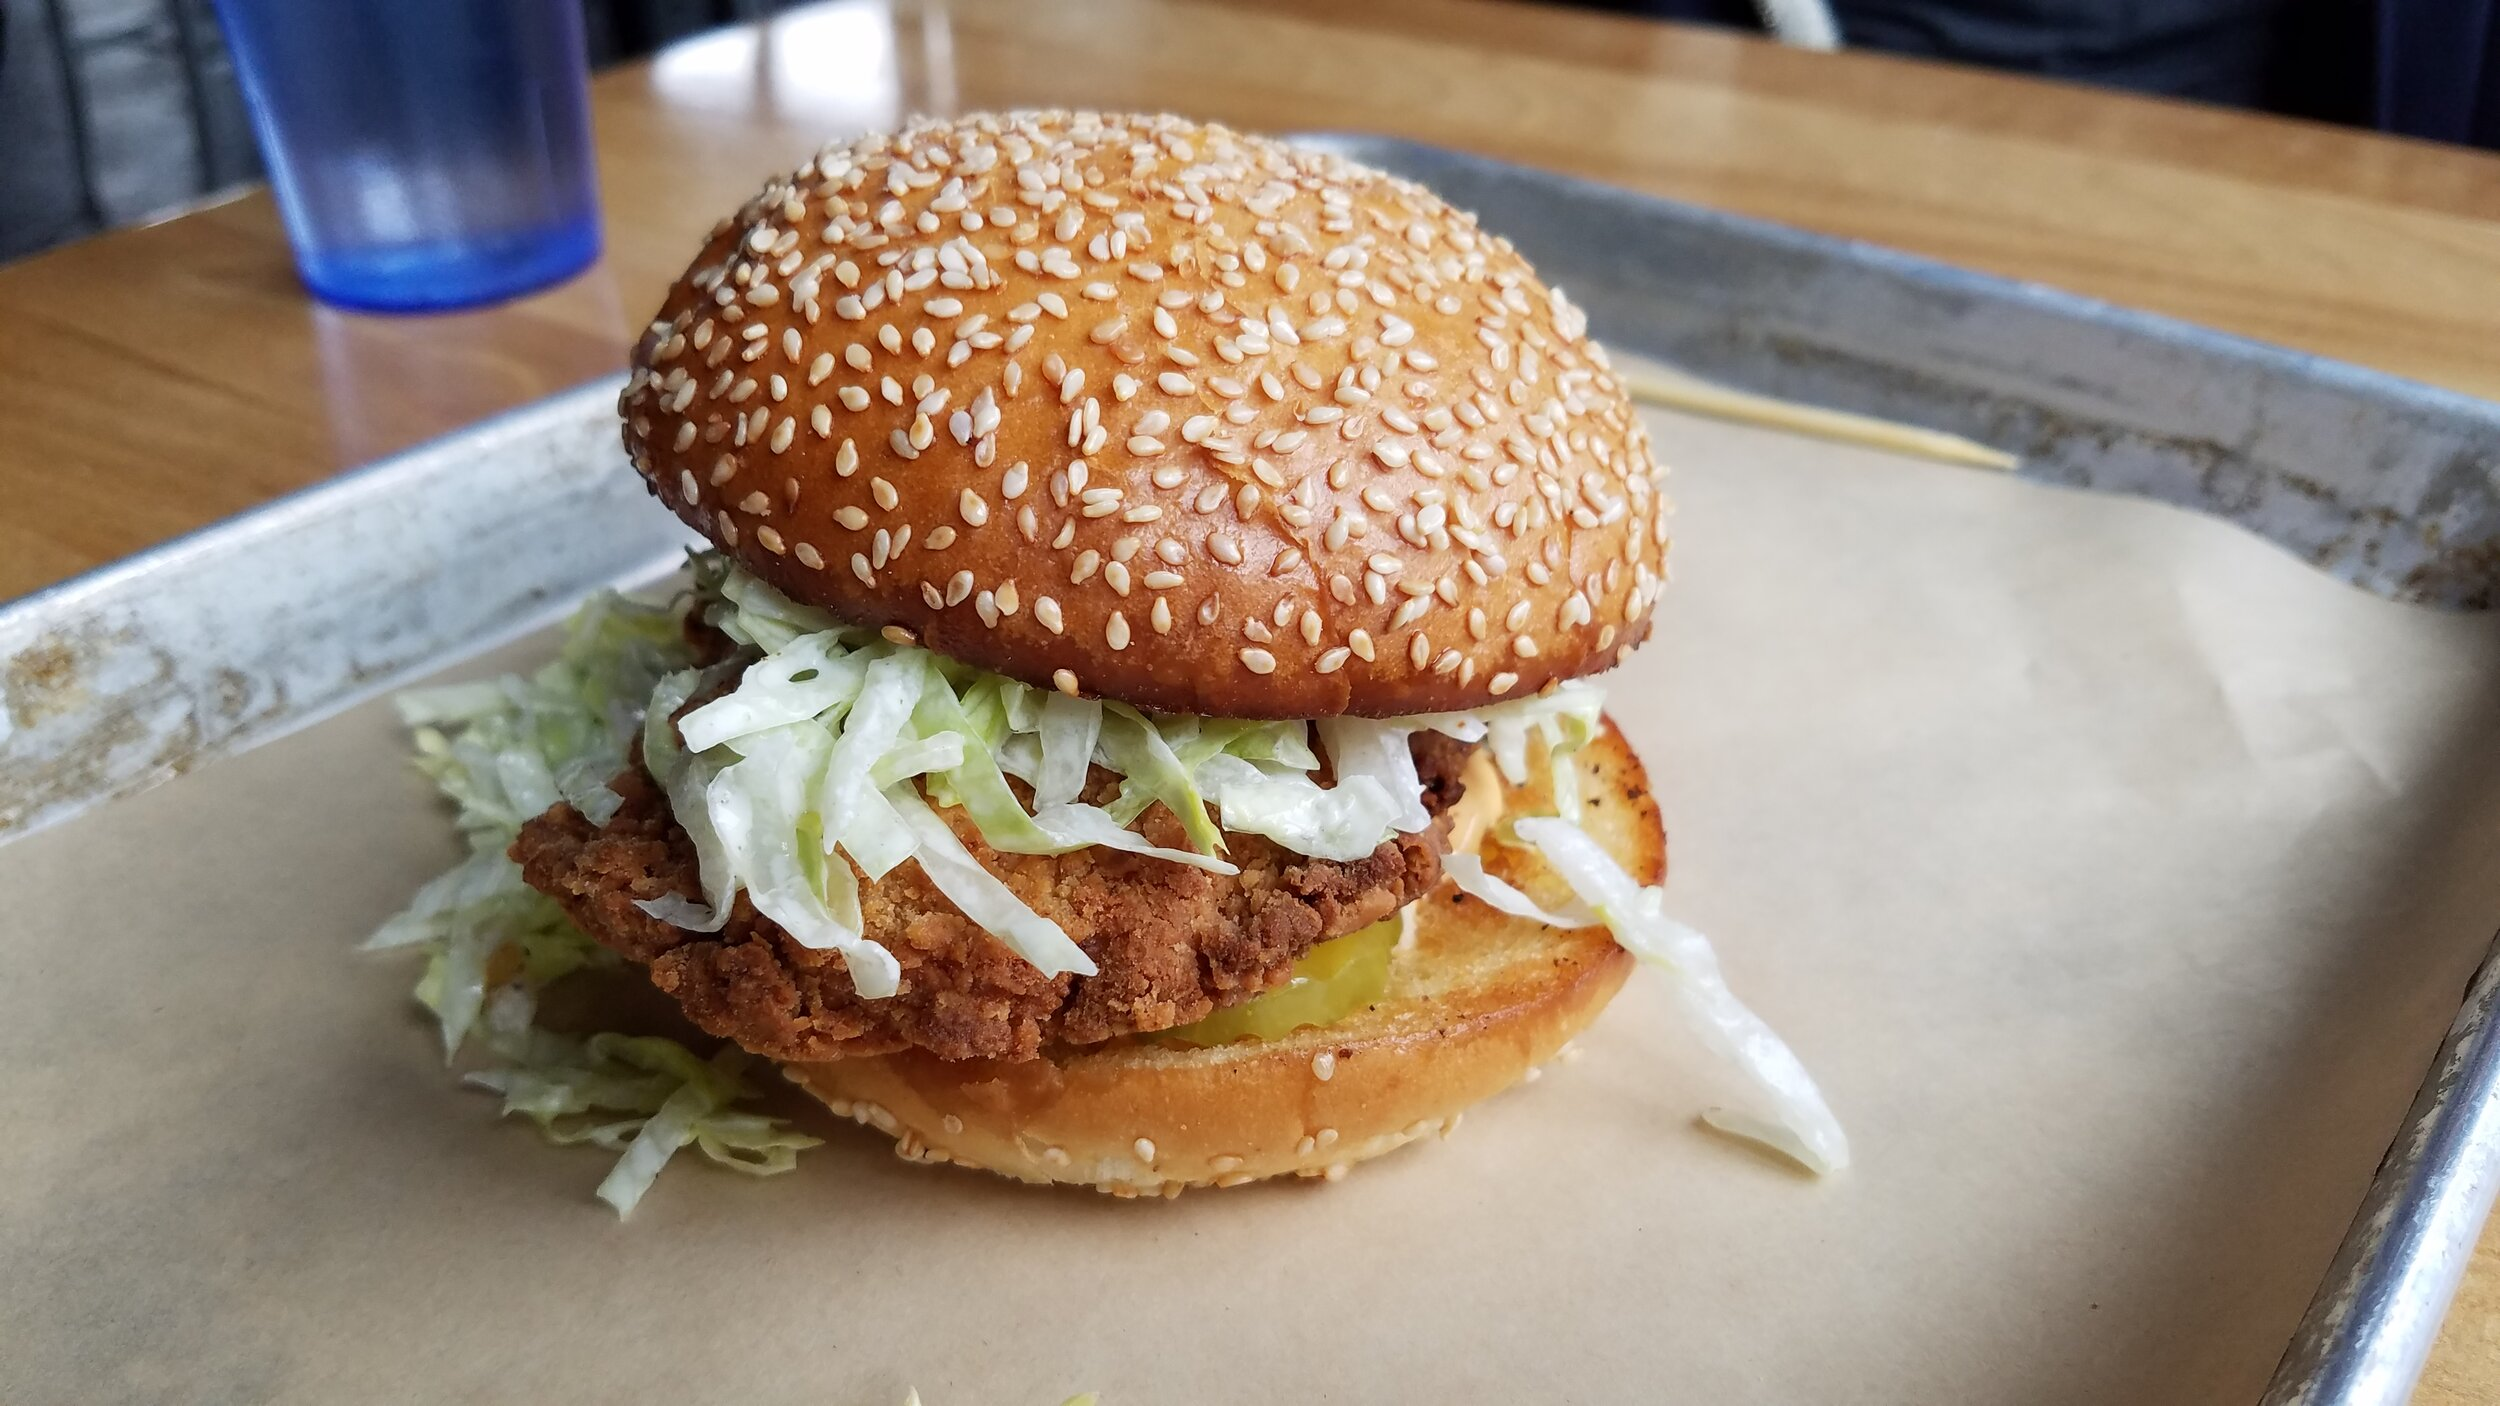 Fried Chicken Bunk Bar Water Sandwichpdx A cold water sandwich is when hot water is coming from the tap and then it is suddenly interrupted by a momentary flow of cold water, followed by the continuation of hot water flow. fried chicken bunk bar water